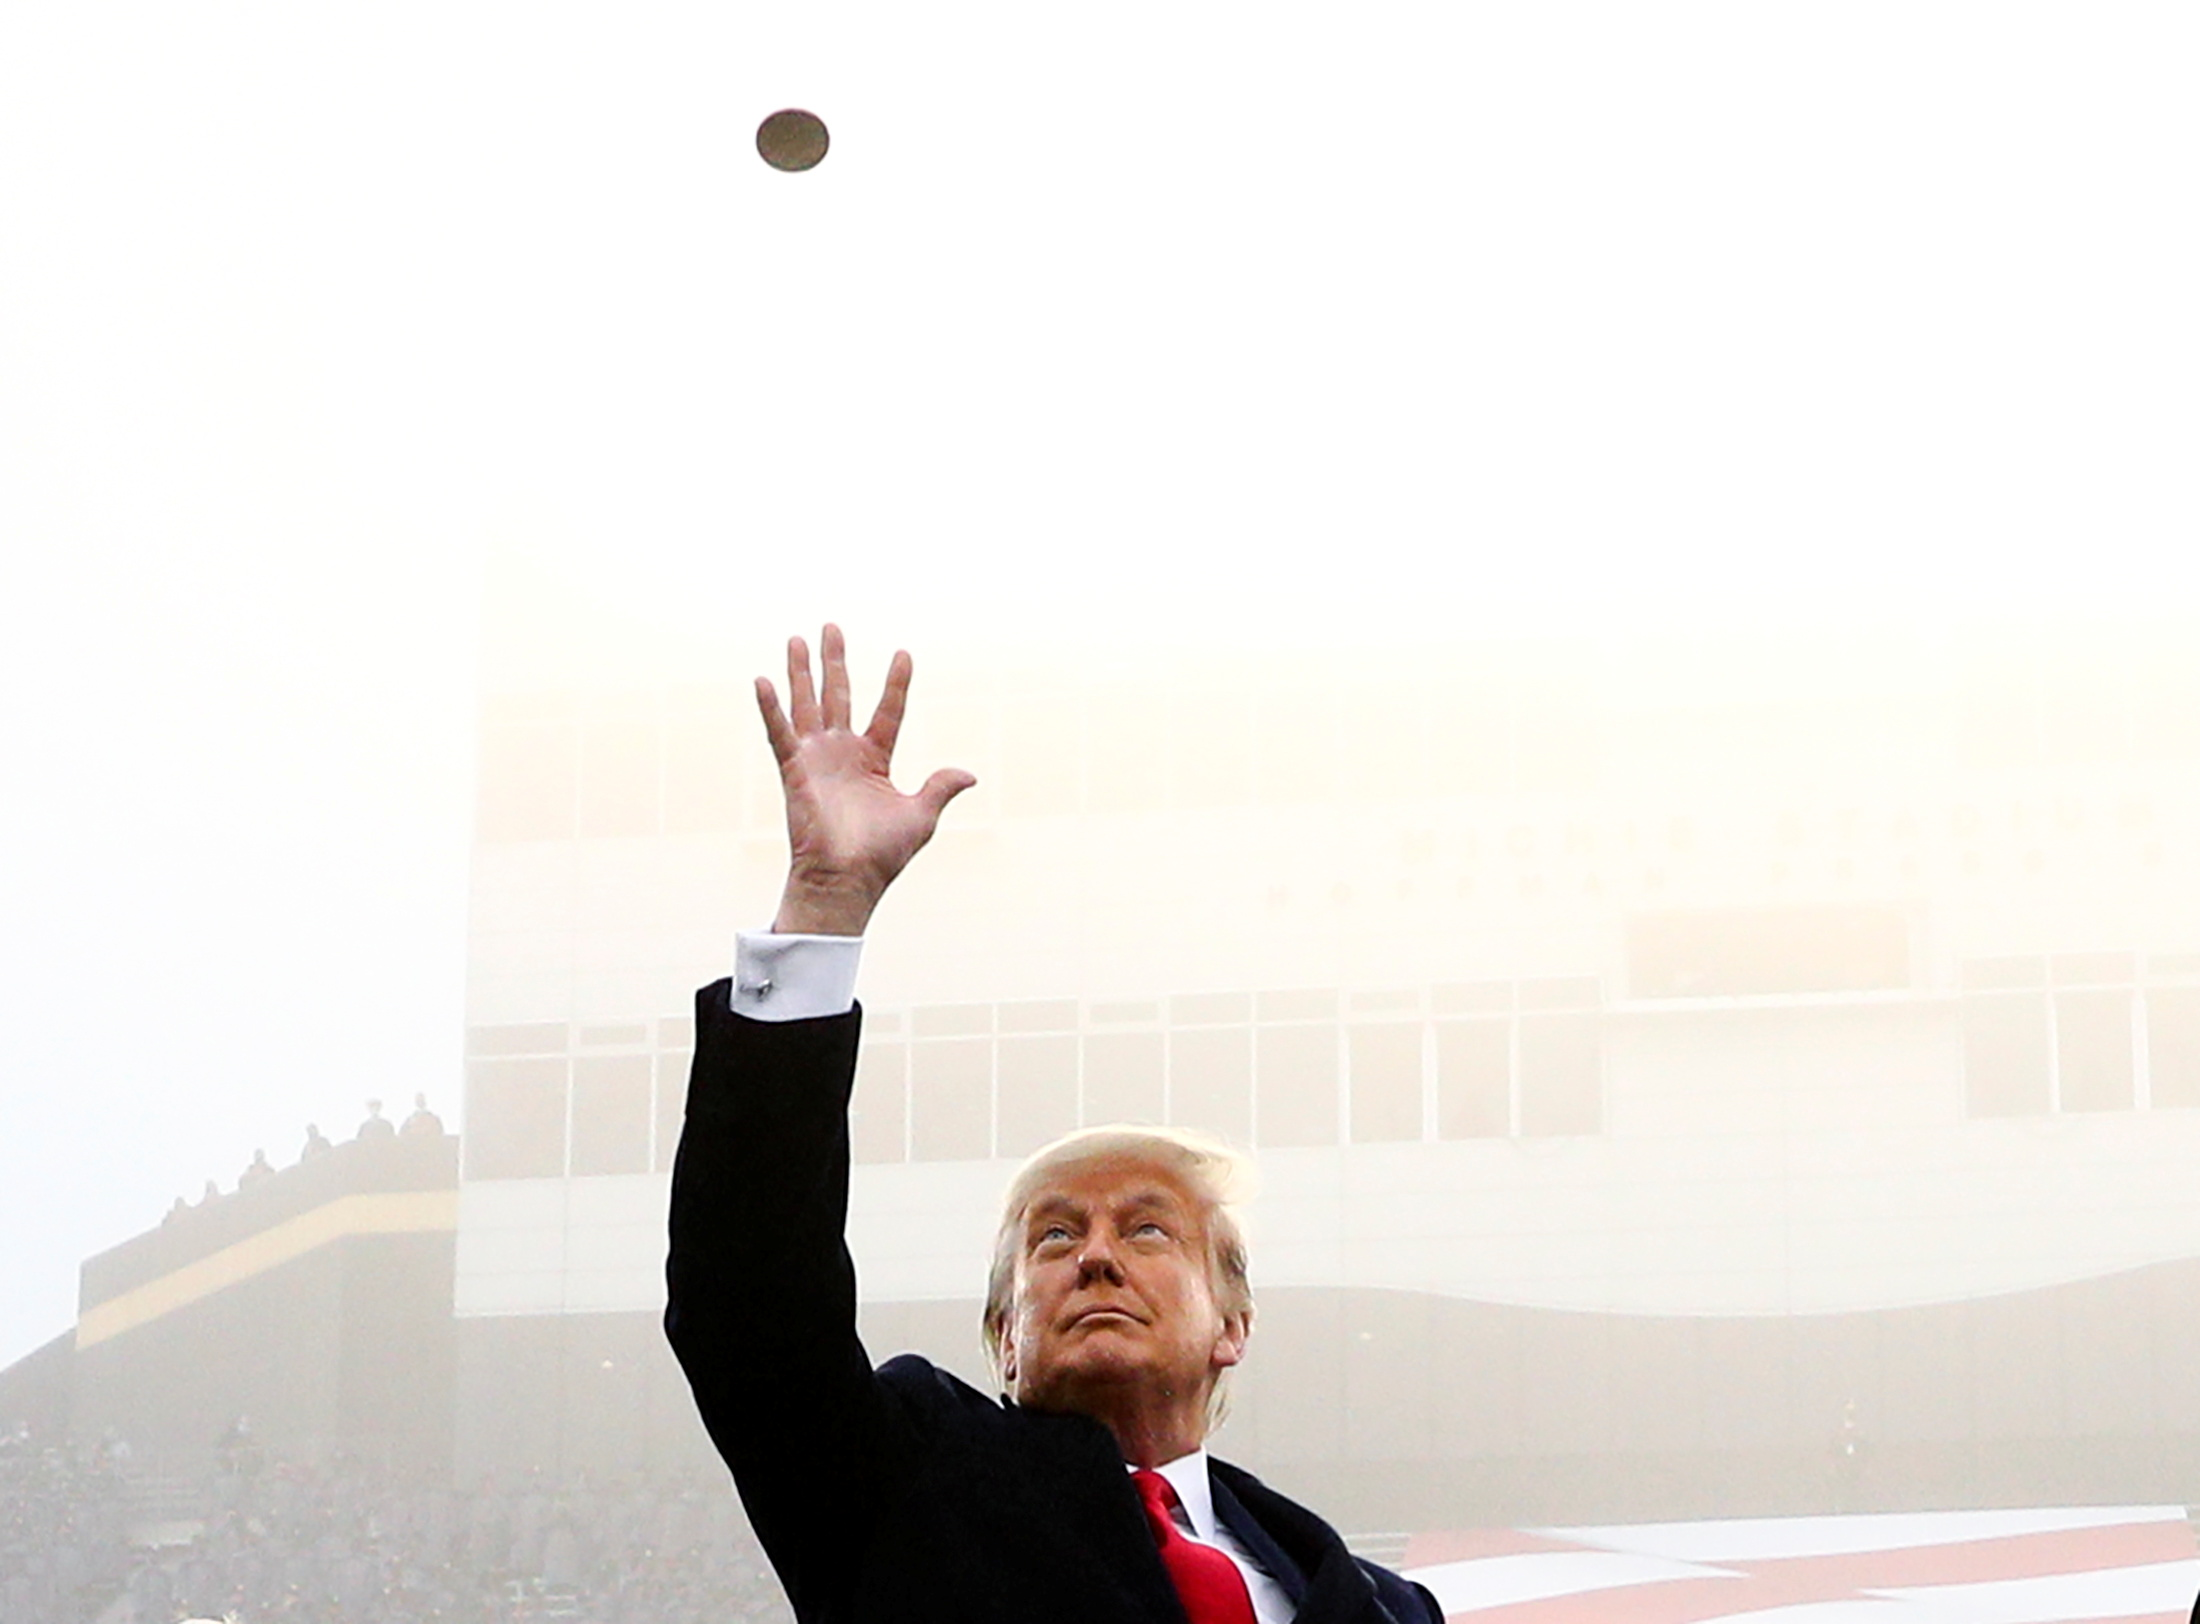 U.S. President Trump participates in a pre-game coin toss ahead of the annual Army-Navy collegiate football game at Michie Stadium, in West Point, New York, U.S., December 12, 2020. REUTERS/Tom Brenner